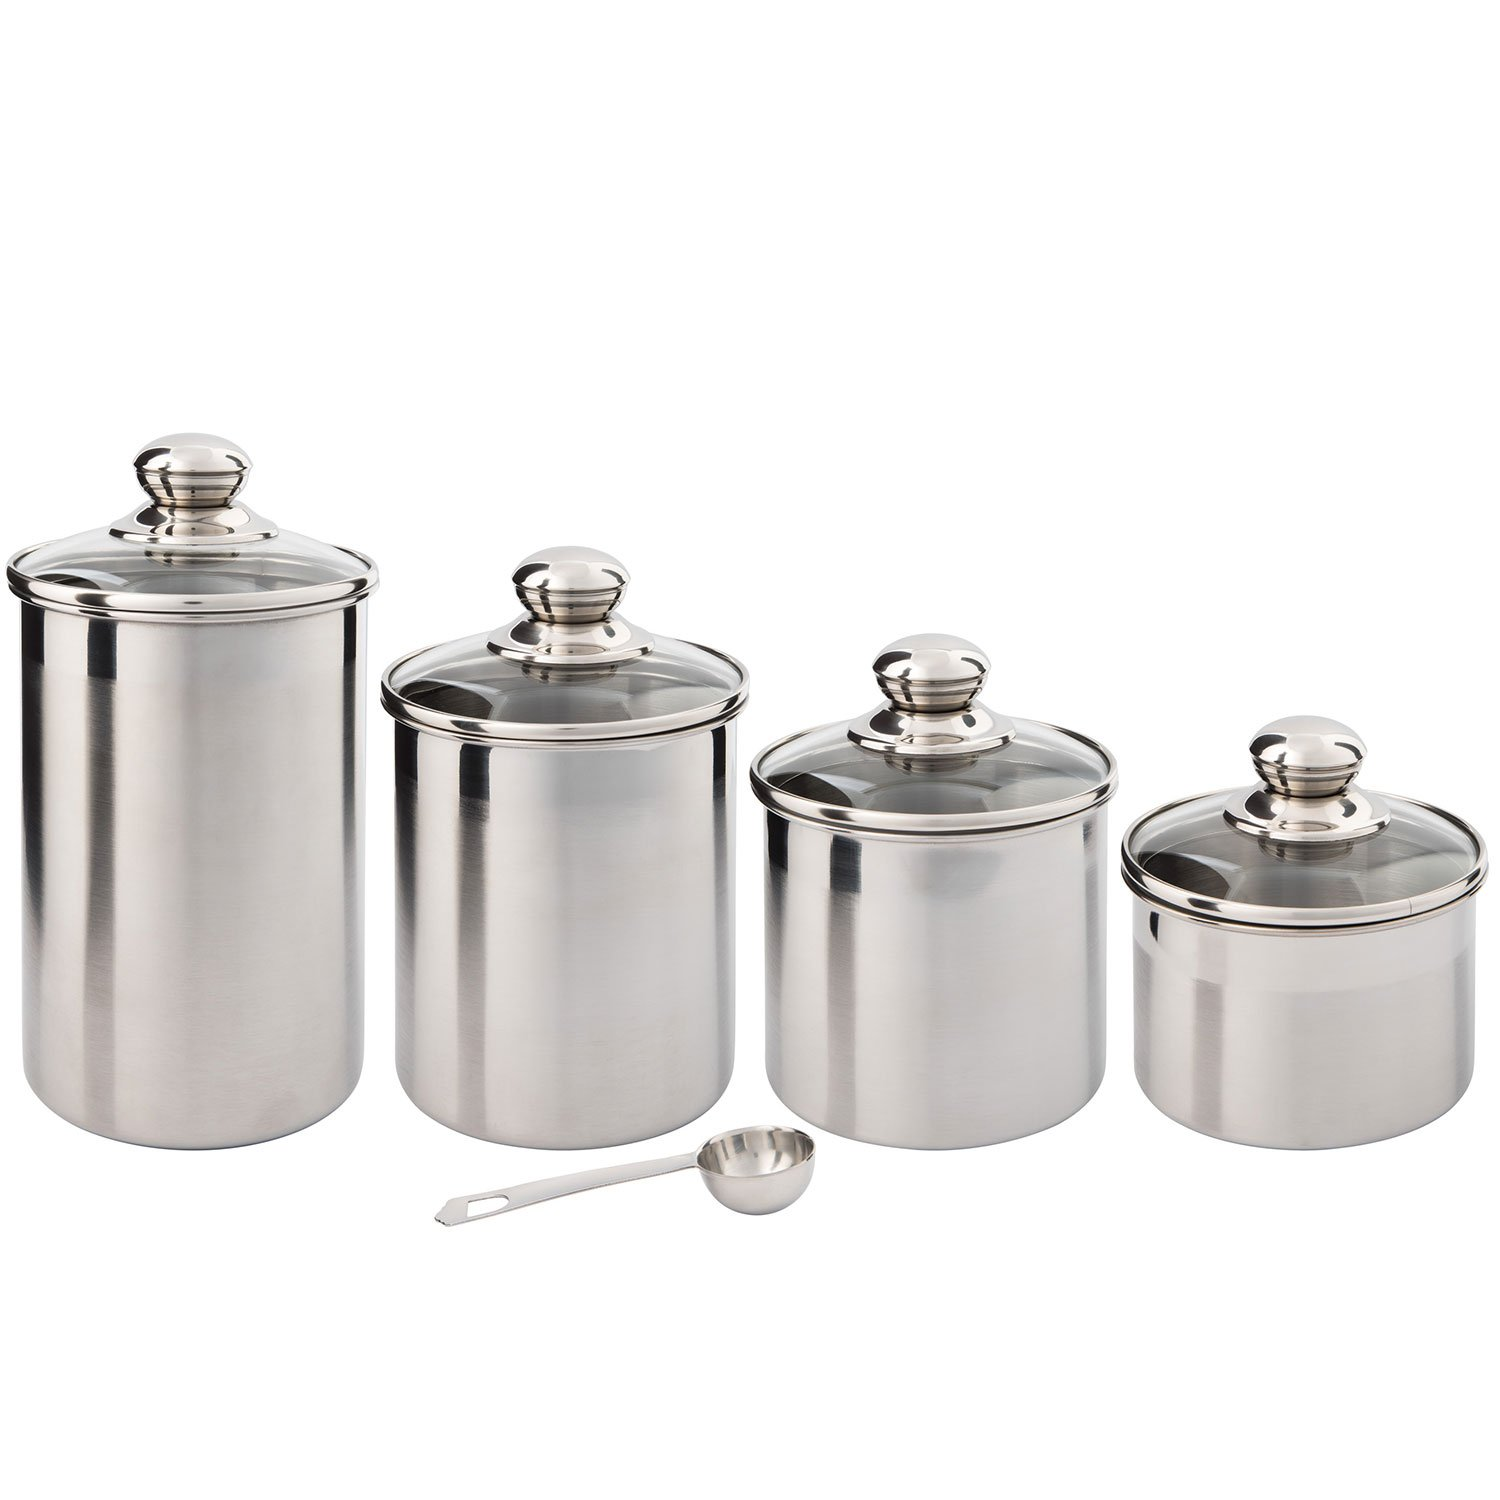 new silver canister set stainless steel 4 pcs best for kitchen